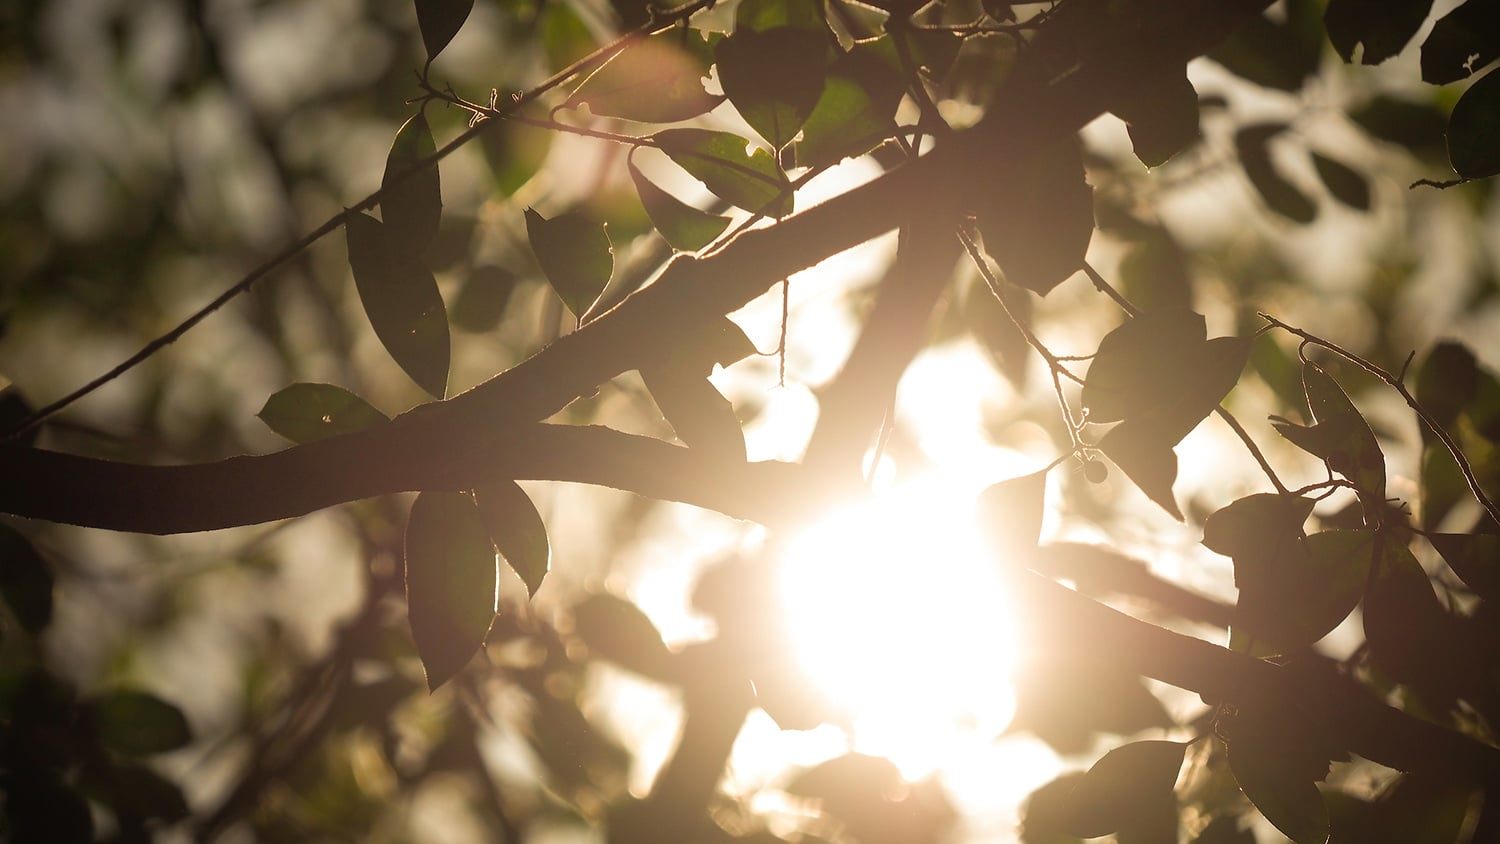 The sun peeks through the leaves of a tree at the Court of North Carolina.